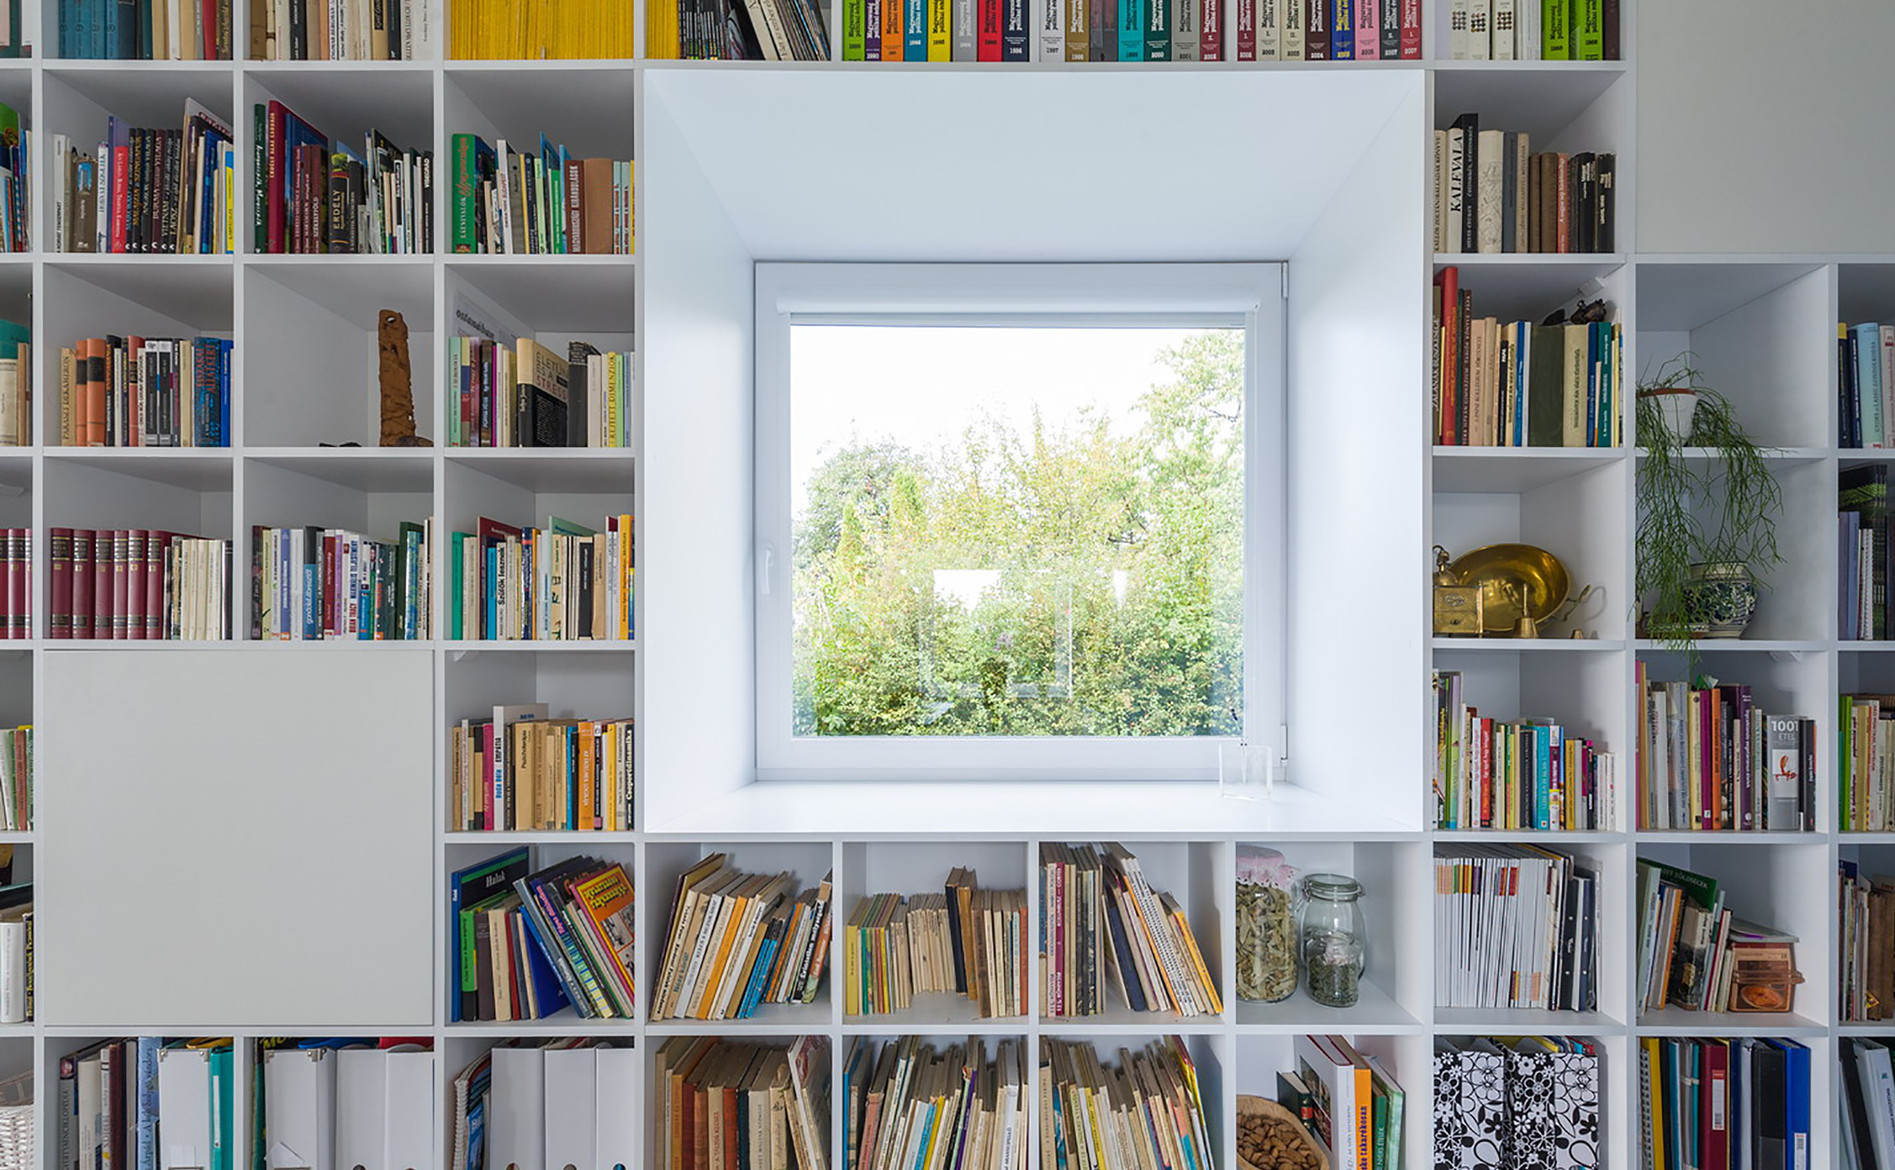 20_interior_bookshelf_with_window